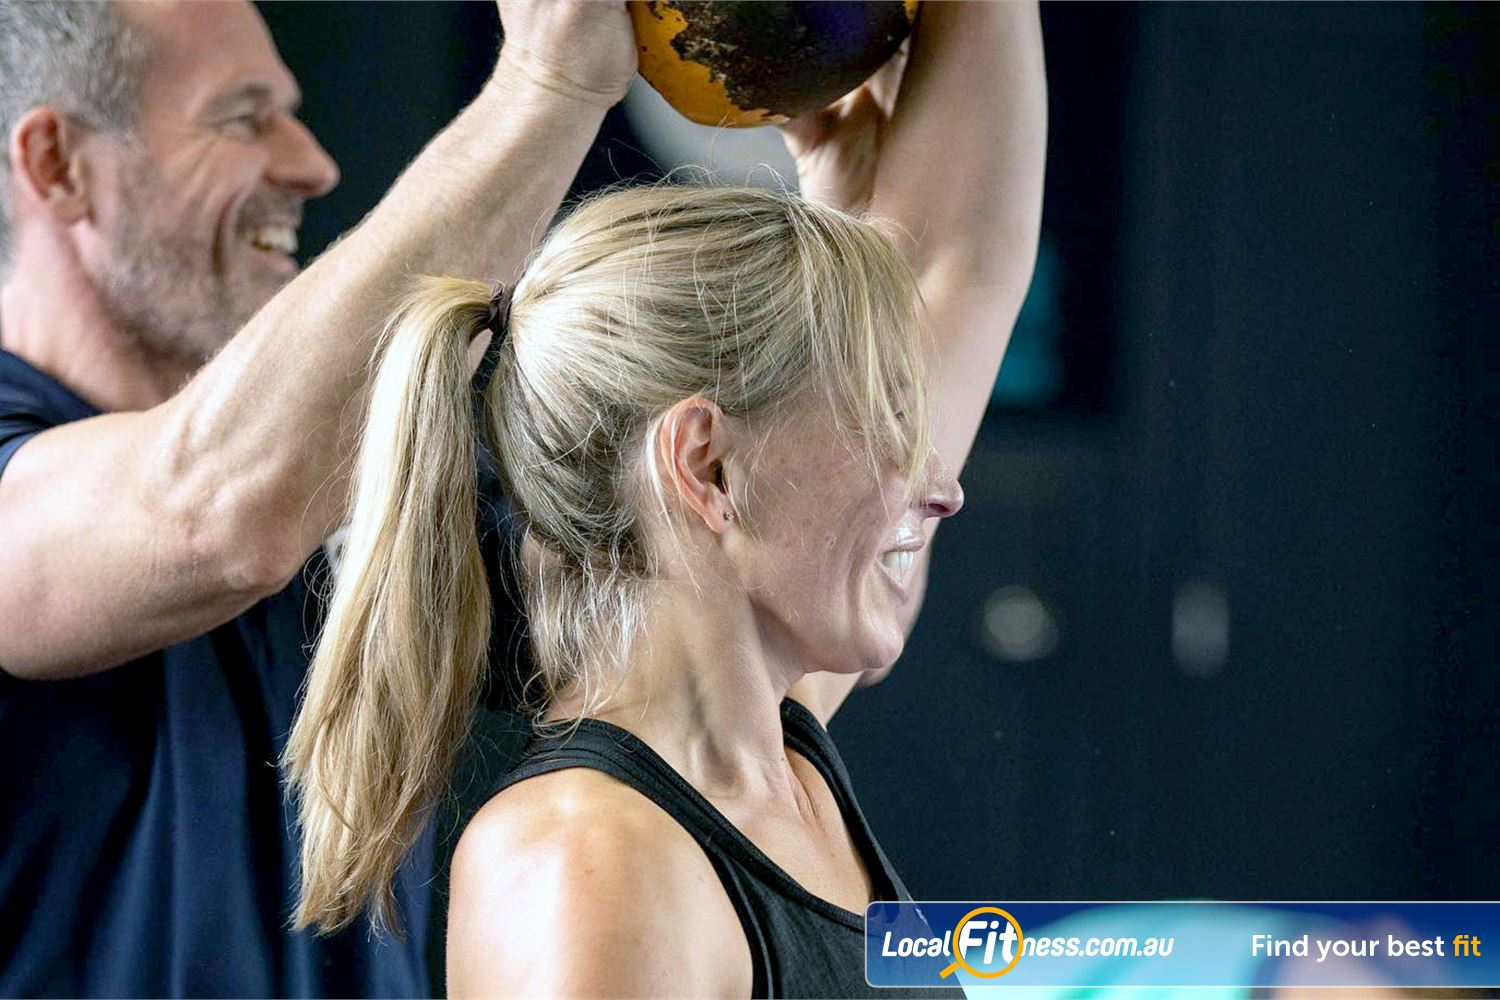 KettleFit Ascot Vale Near Brunswick West All our classes are monitored by our experienced Ascot Vale personal training team.